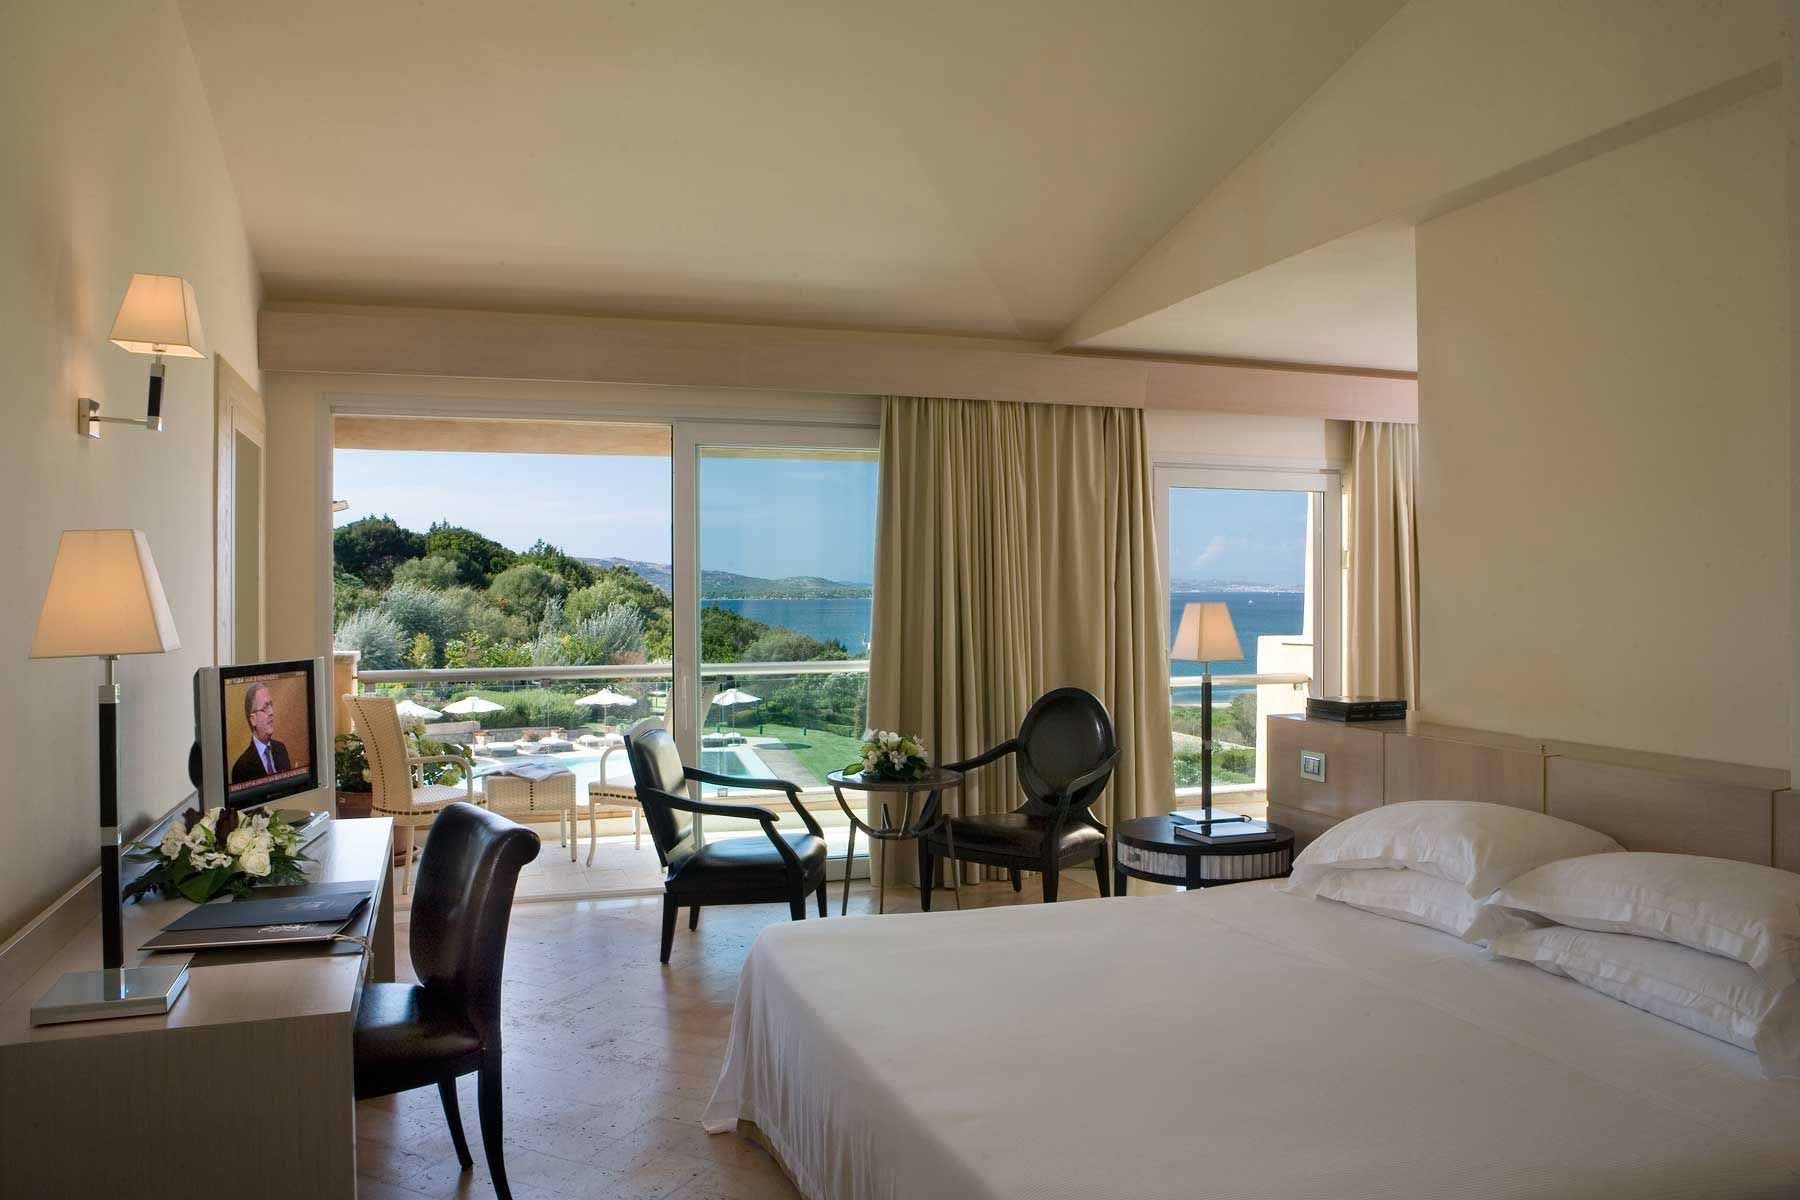 Junior suite at L'Ea Bianca Luxury Resort